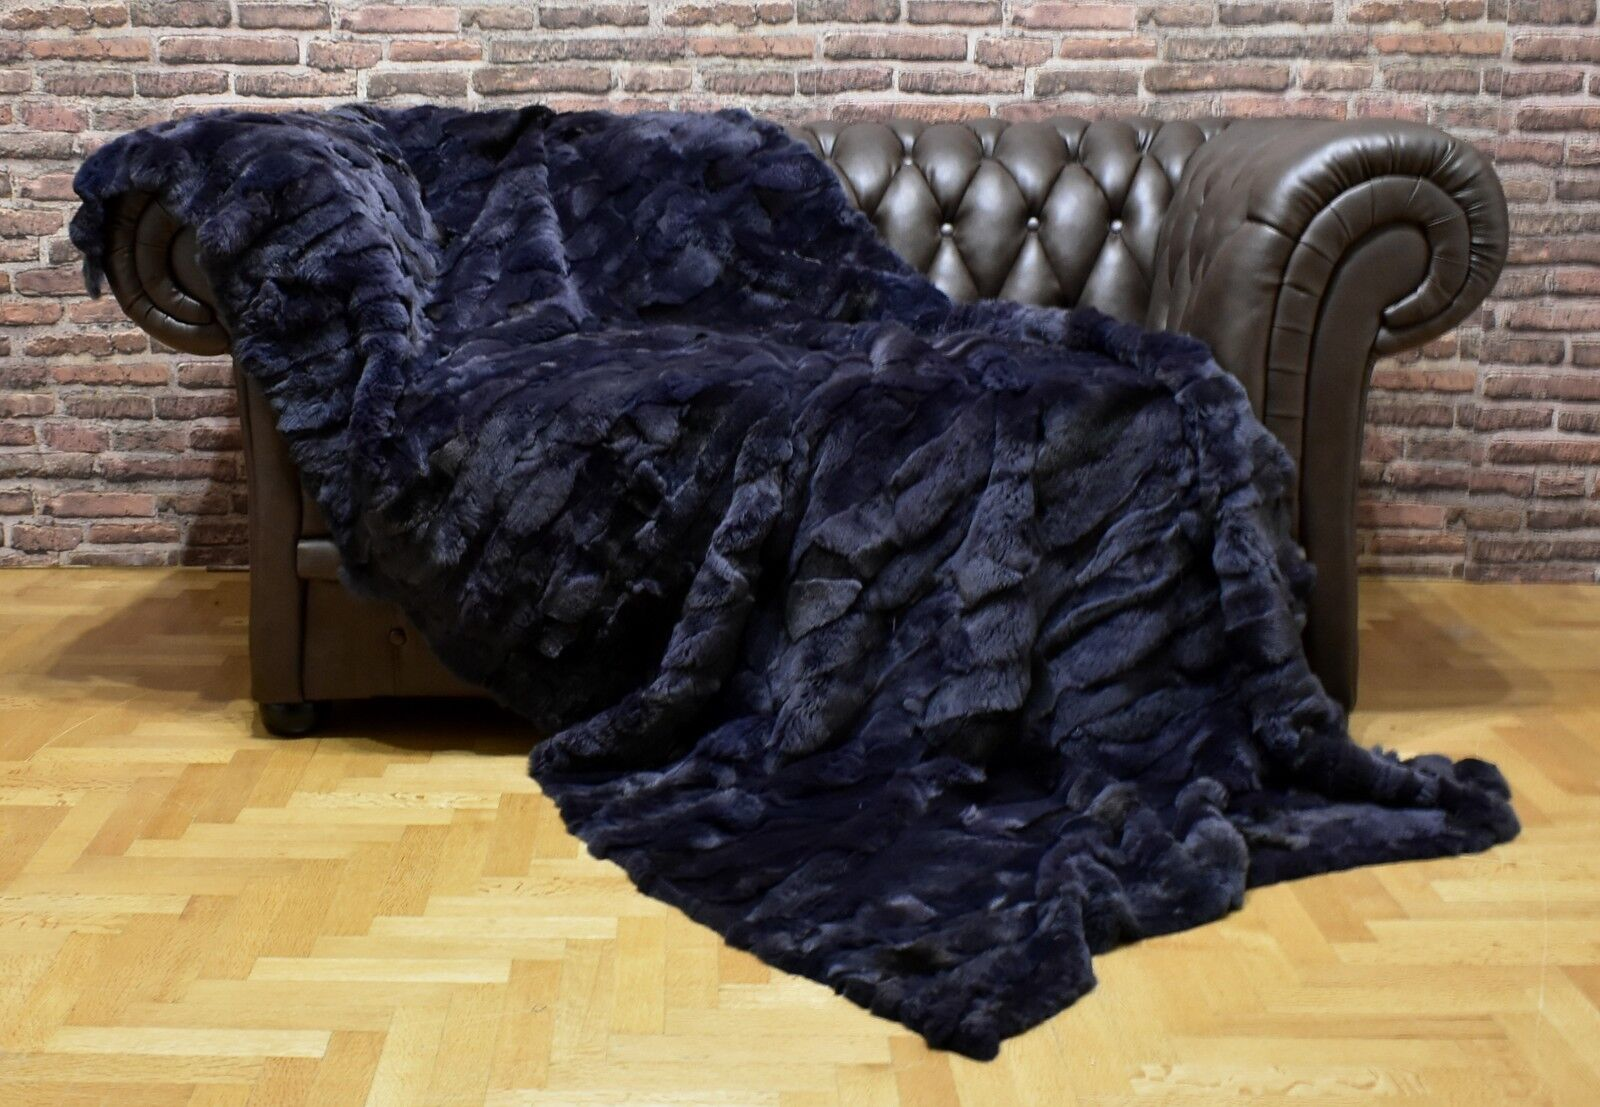 Luxury Real Hale Navy Rex Rabbit Throw Blanket